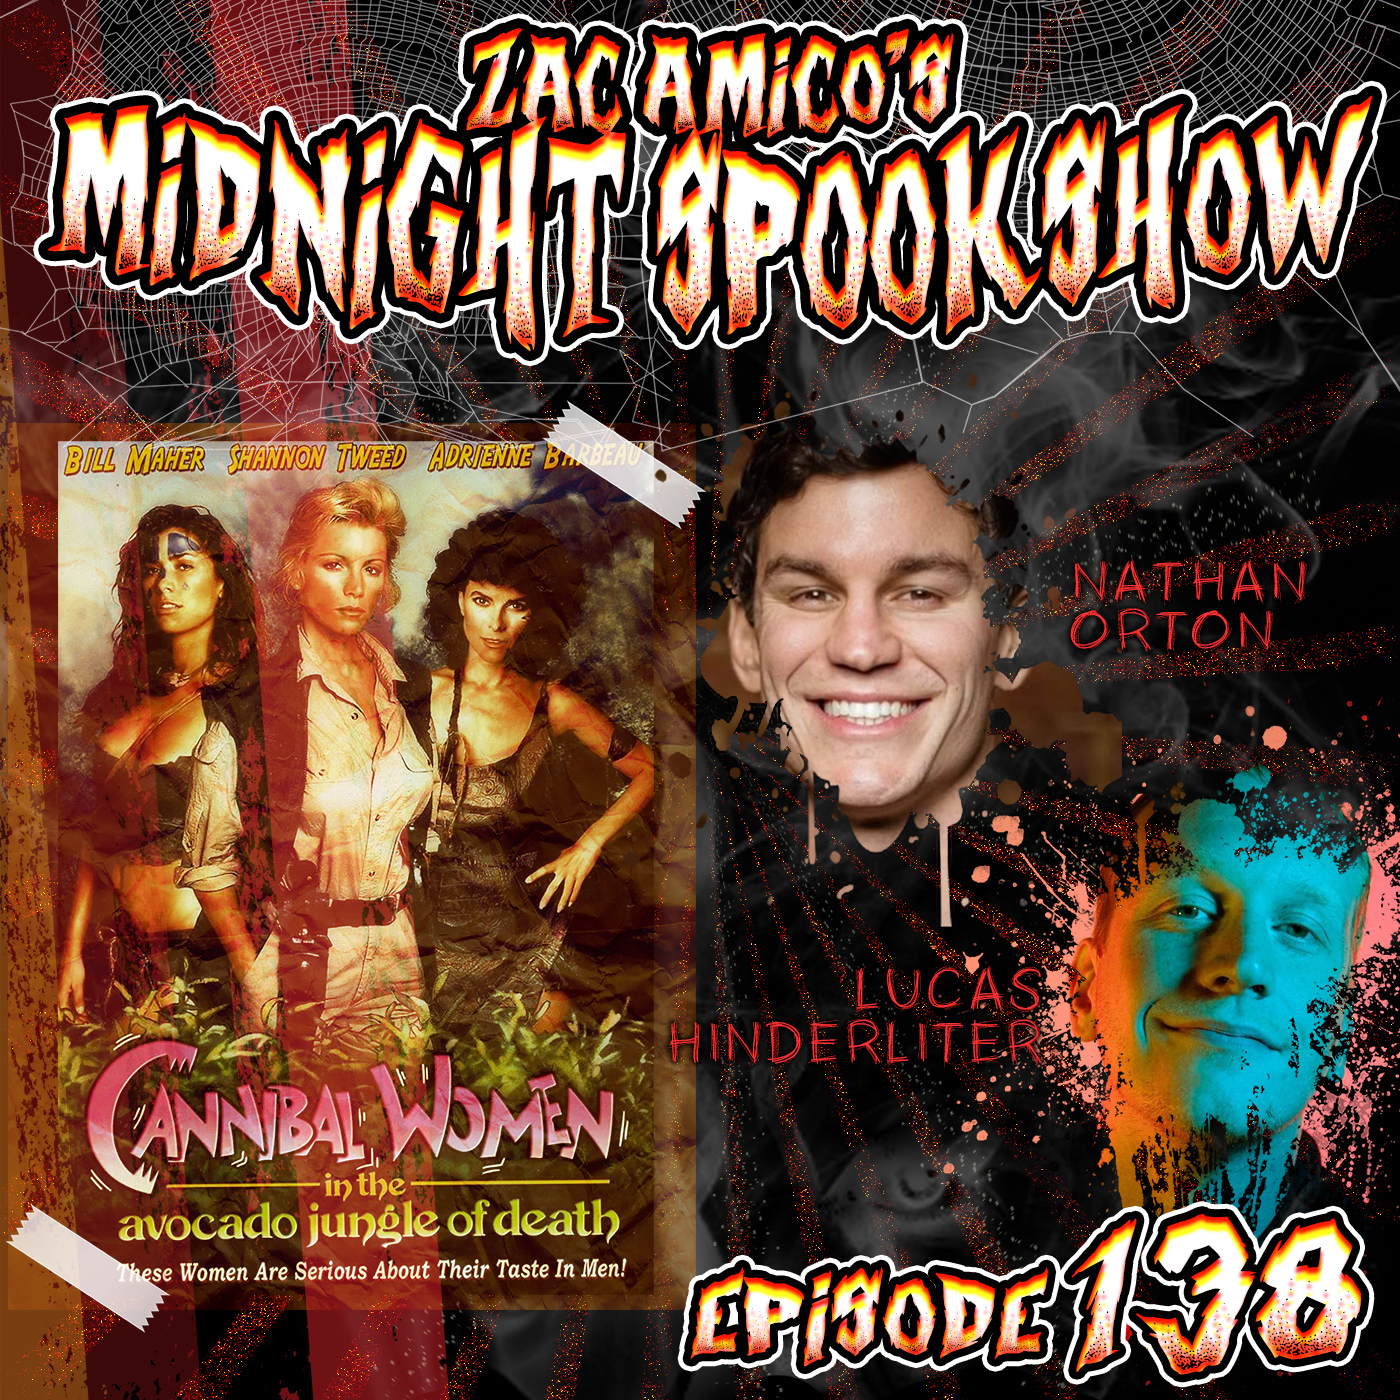 Nathan Orton & Lucas Hinderliter - Cannibal Women in the Avocado Jungle of Death - ZAMSS #138